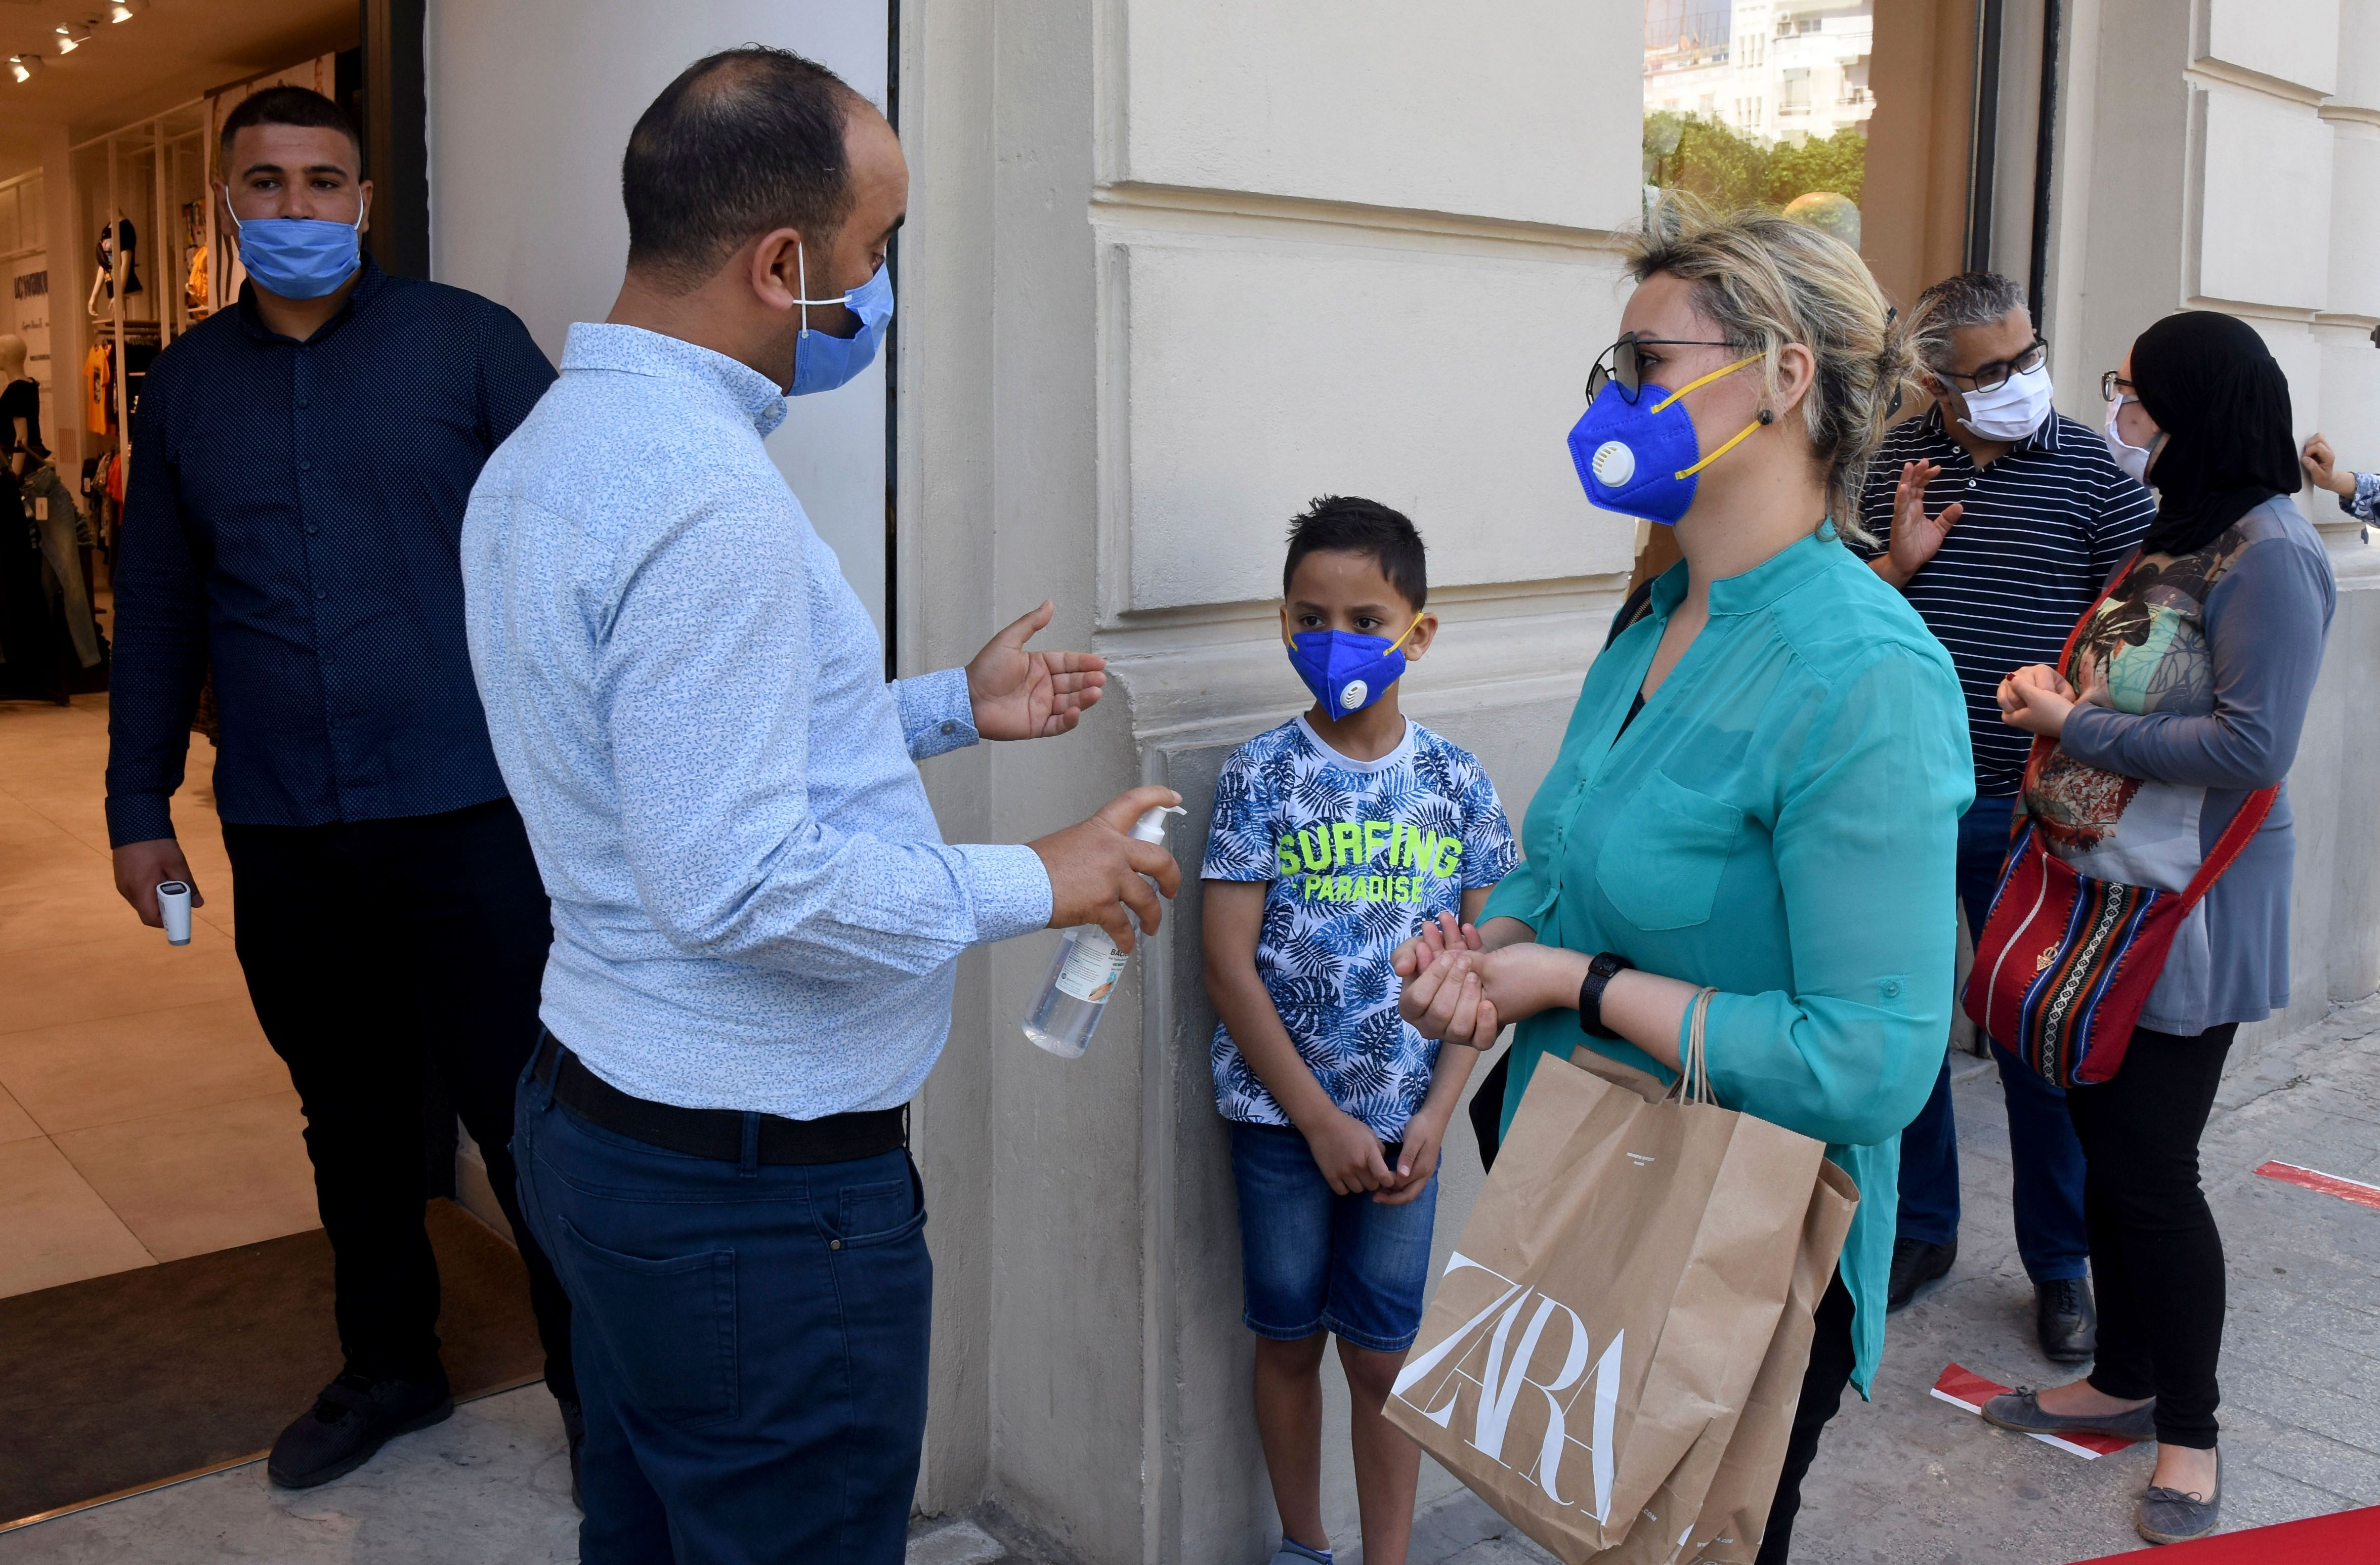 An employee sprays some alcoholic gel on customers' hands outside a fashion shop in Tunis, Monday, May, 11, 2020. Fashion shops reopen Monday in Tunisia allowing citizens to buy new outfits to celebrate the Aid next weekVirus Outbreak , Tunis, Tunisia - 11 May 2020